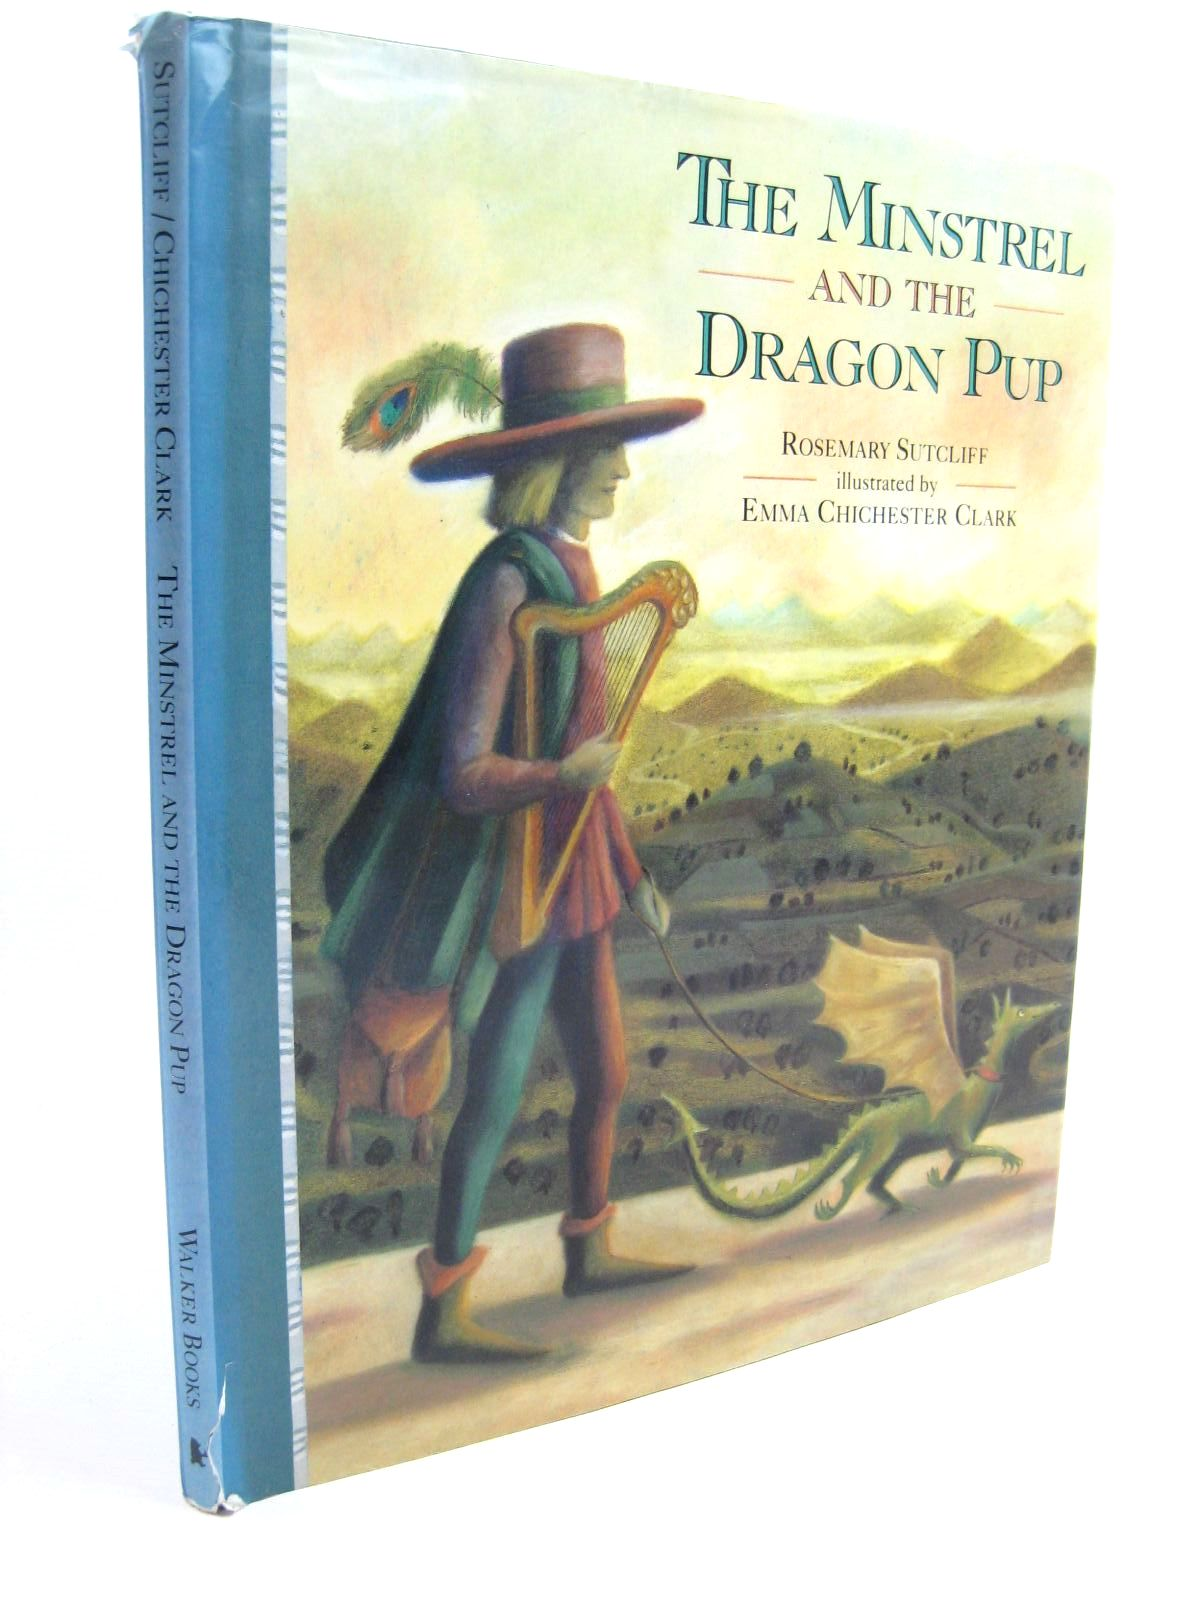 Photo of THE MINSTREL AND THE DRAGON PUP written by Sutcliff, Rosemary illustrated by Clark, Emma Chichester published by Walker Books (STOCK CODE: 1507554)  for sale by Stella & Rose's Books